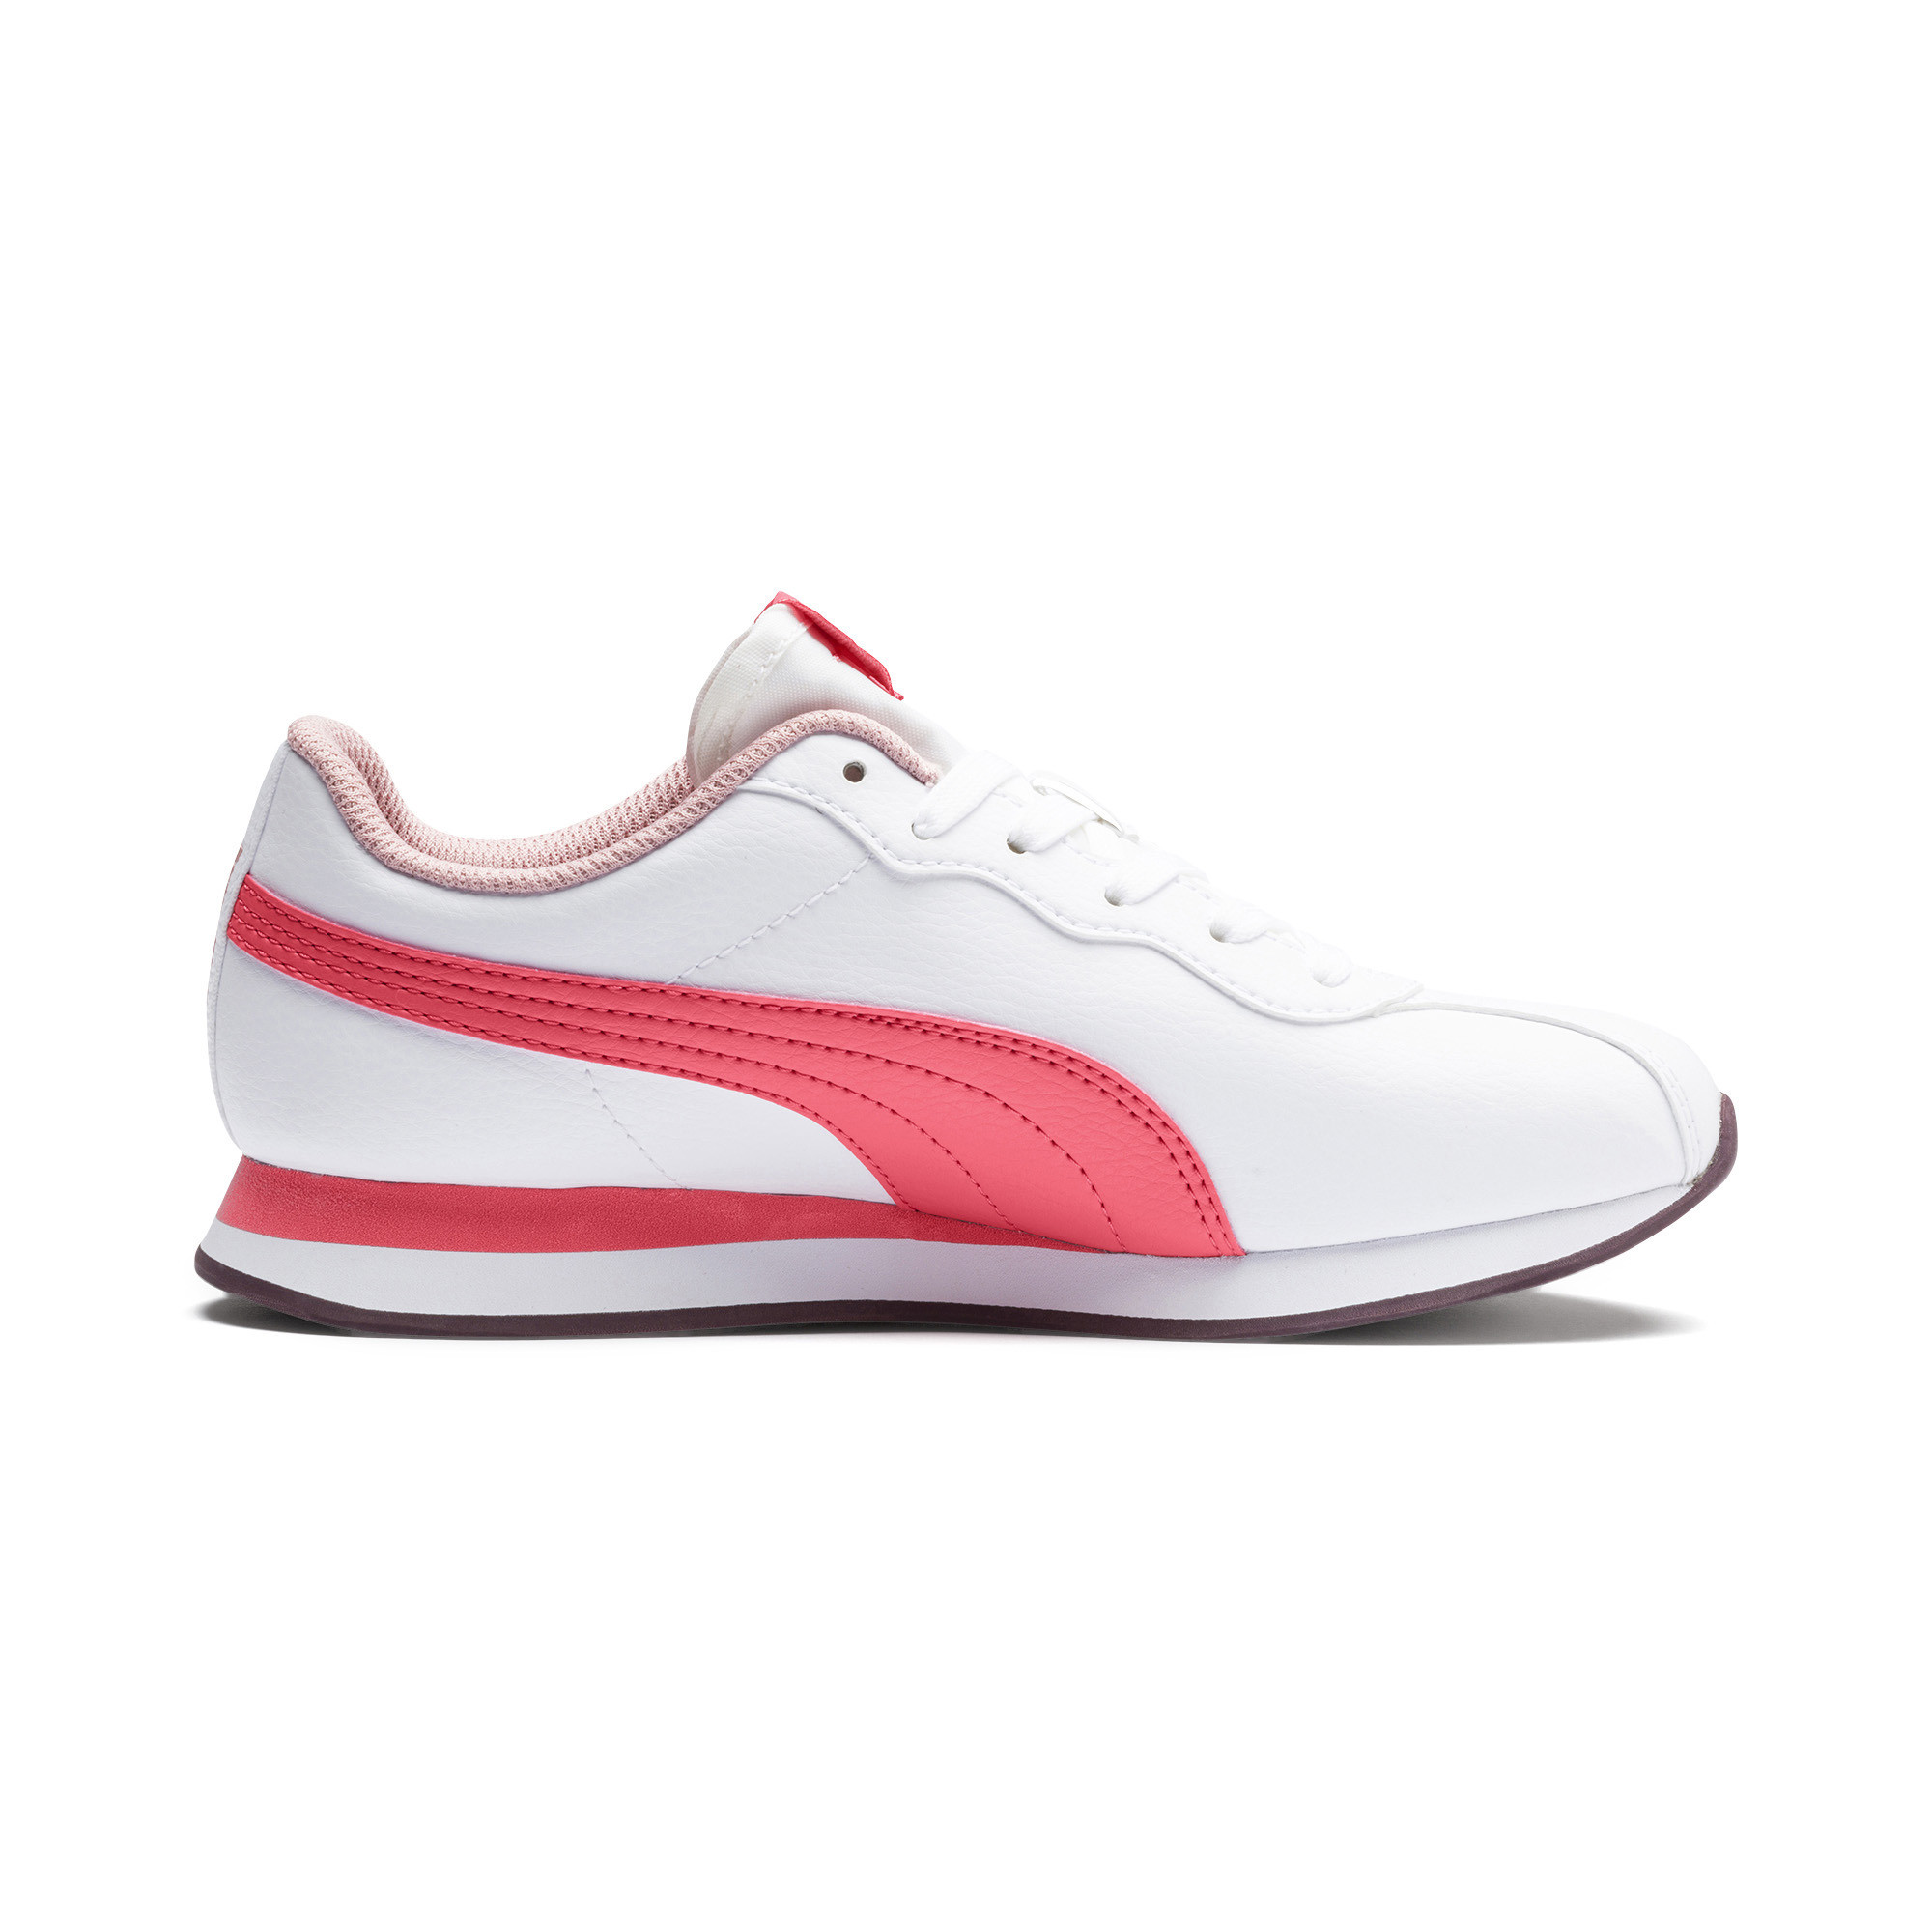 PUMA-Turin-II-Sneakers-JR-Kids-Shoe-Kids thumbnail 24